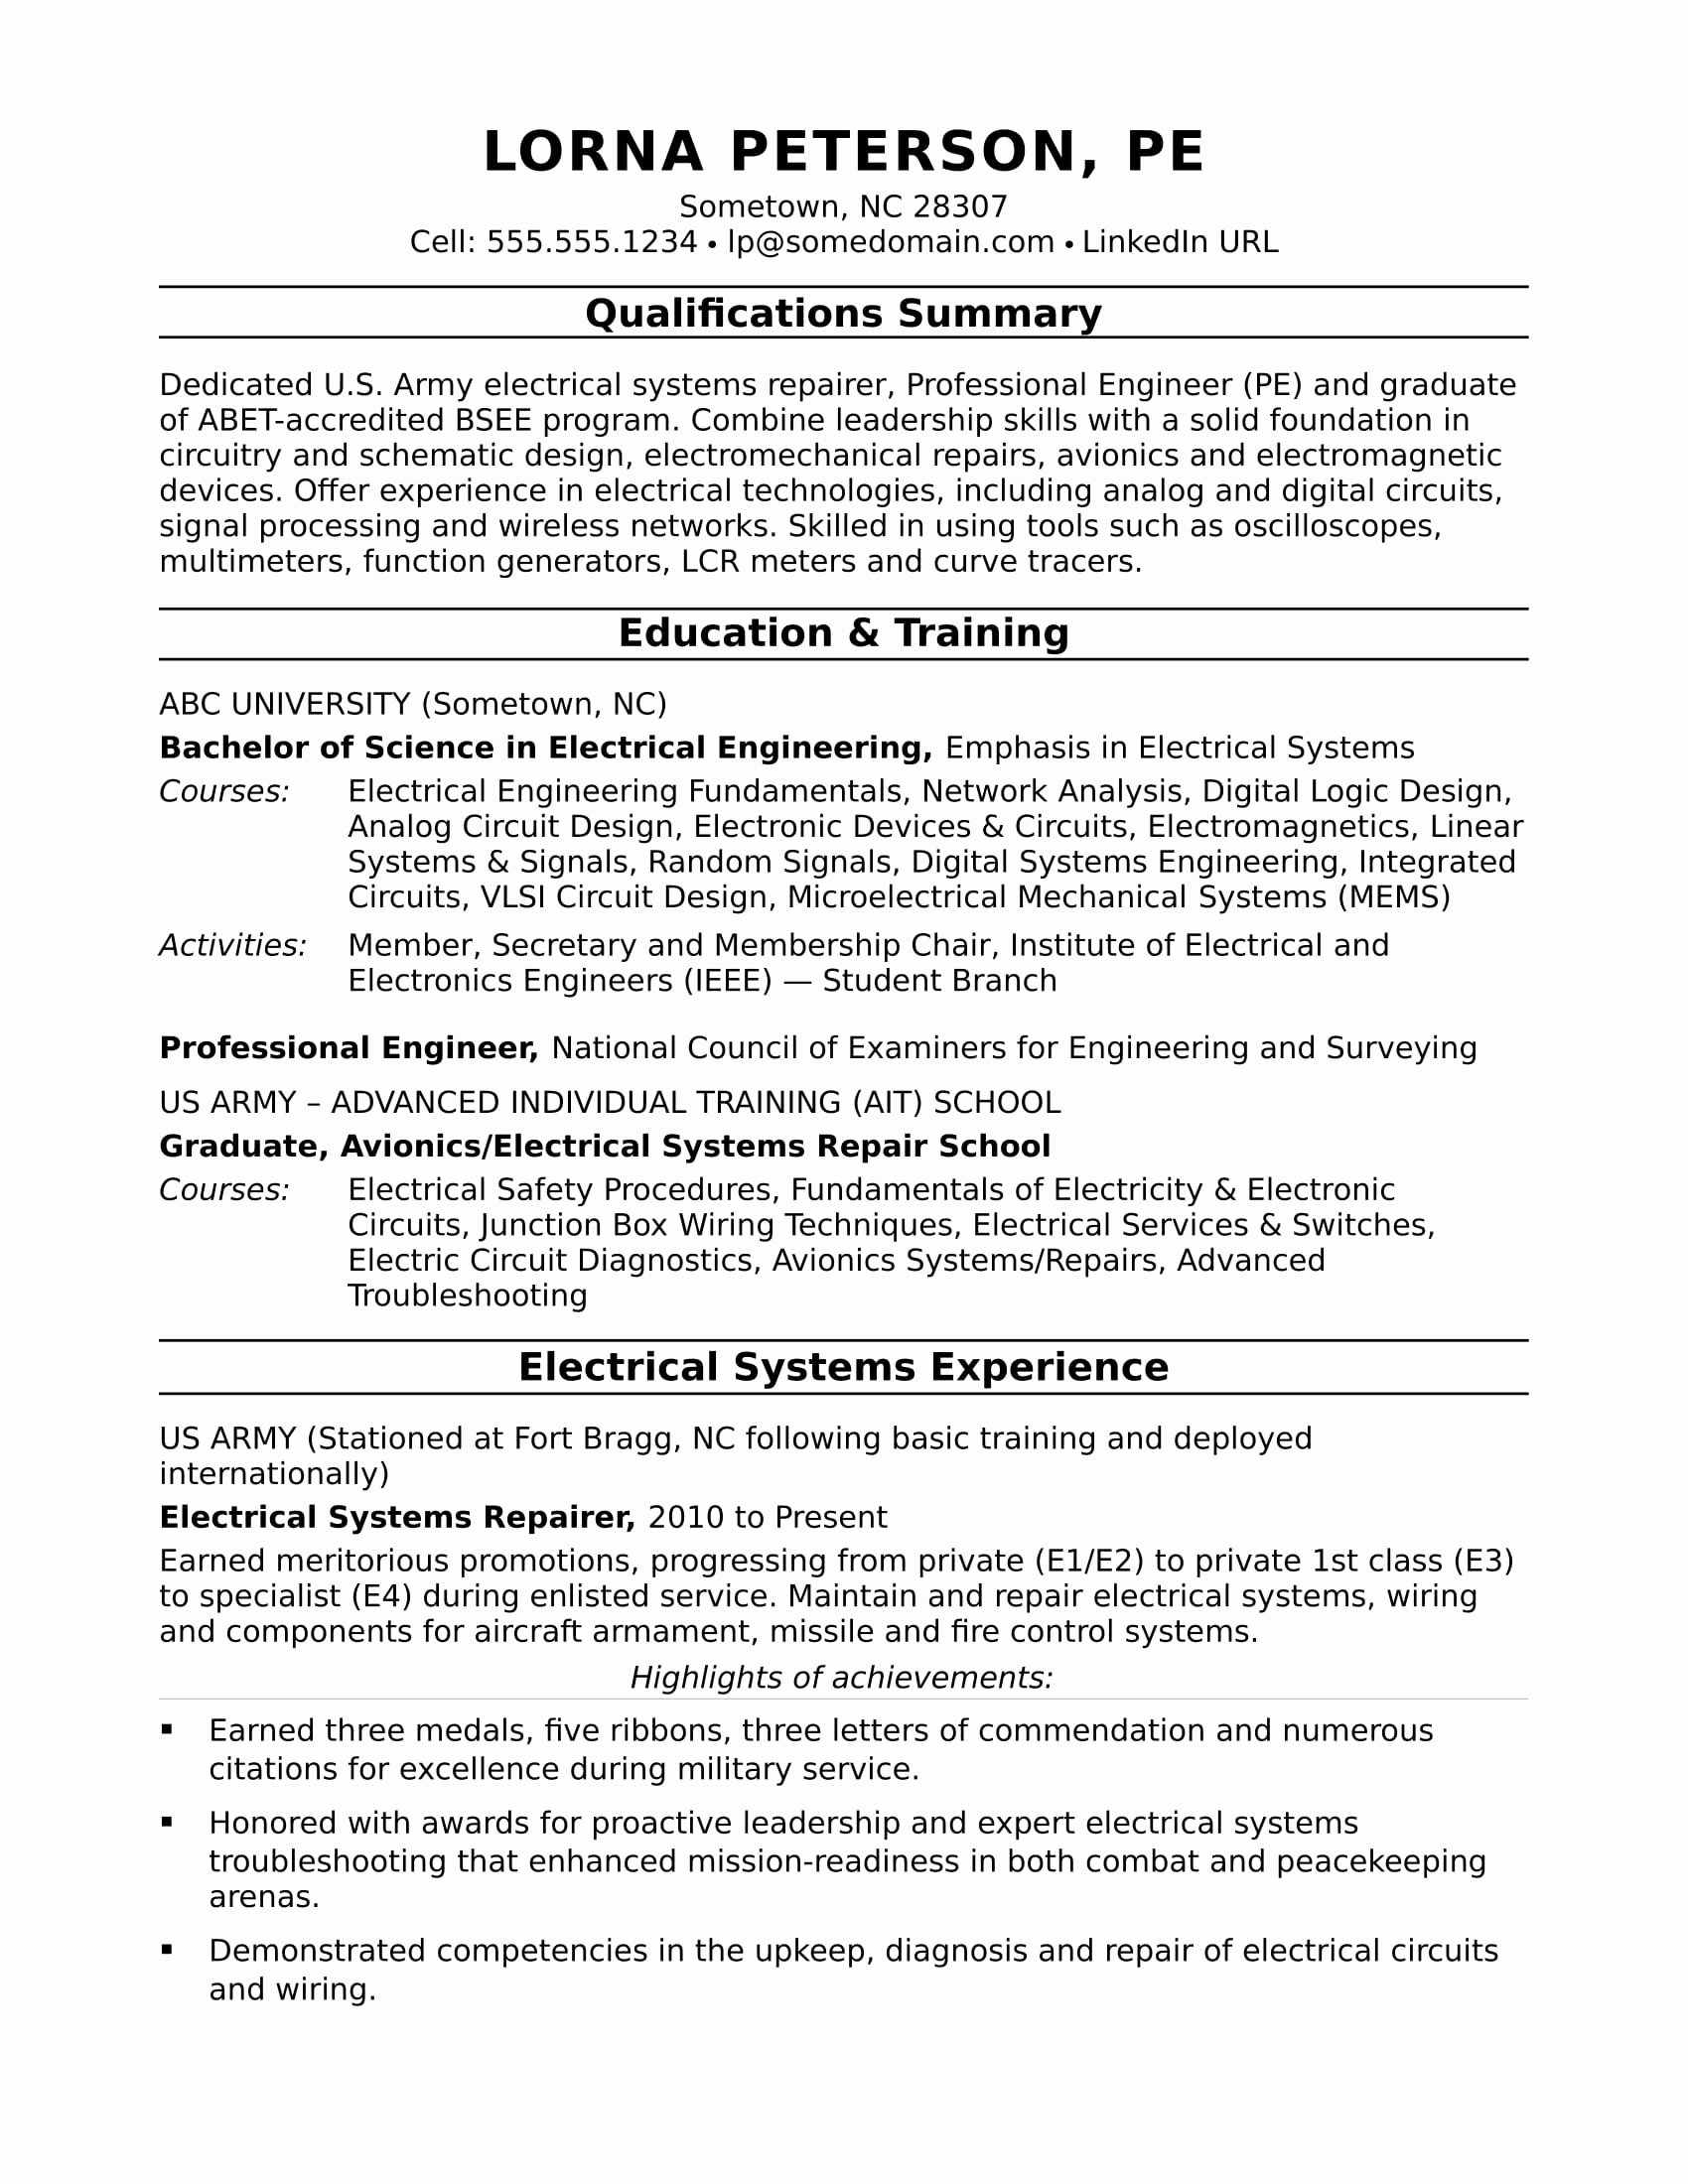 Favorite Electrical Engineer Resume Word format